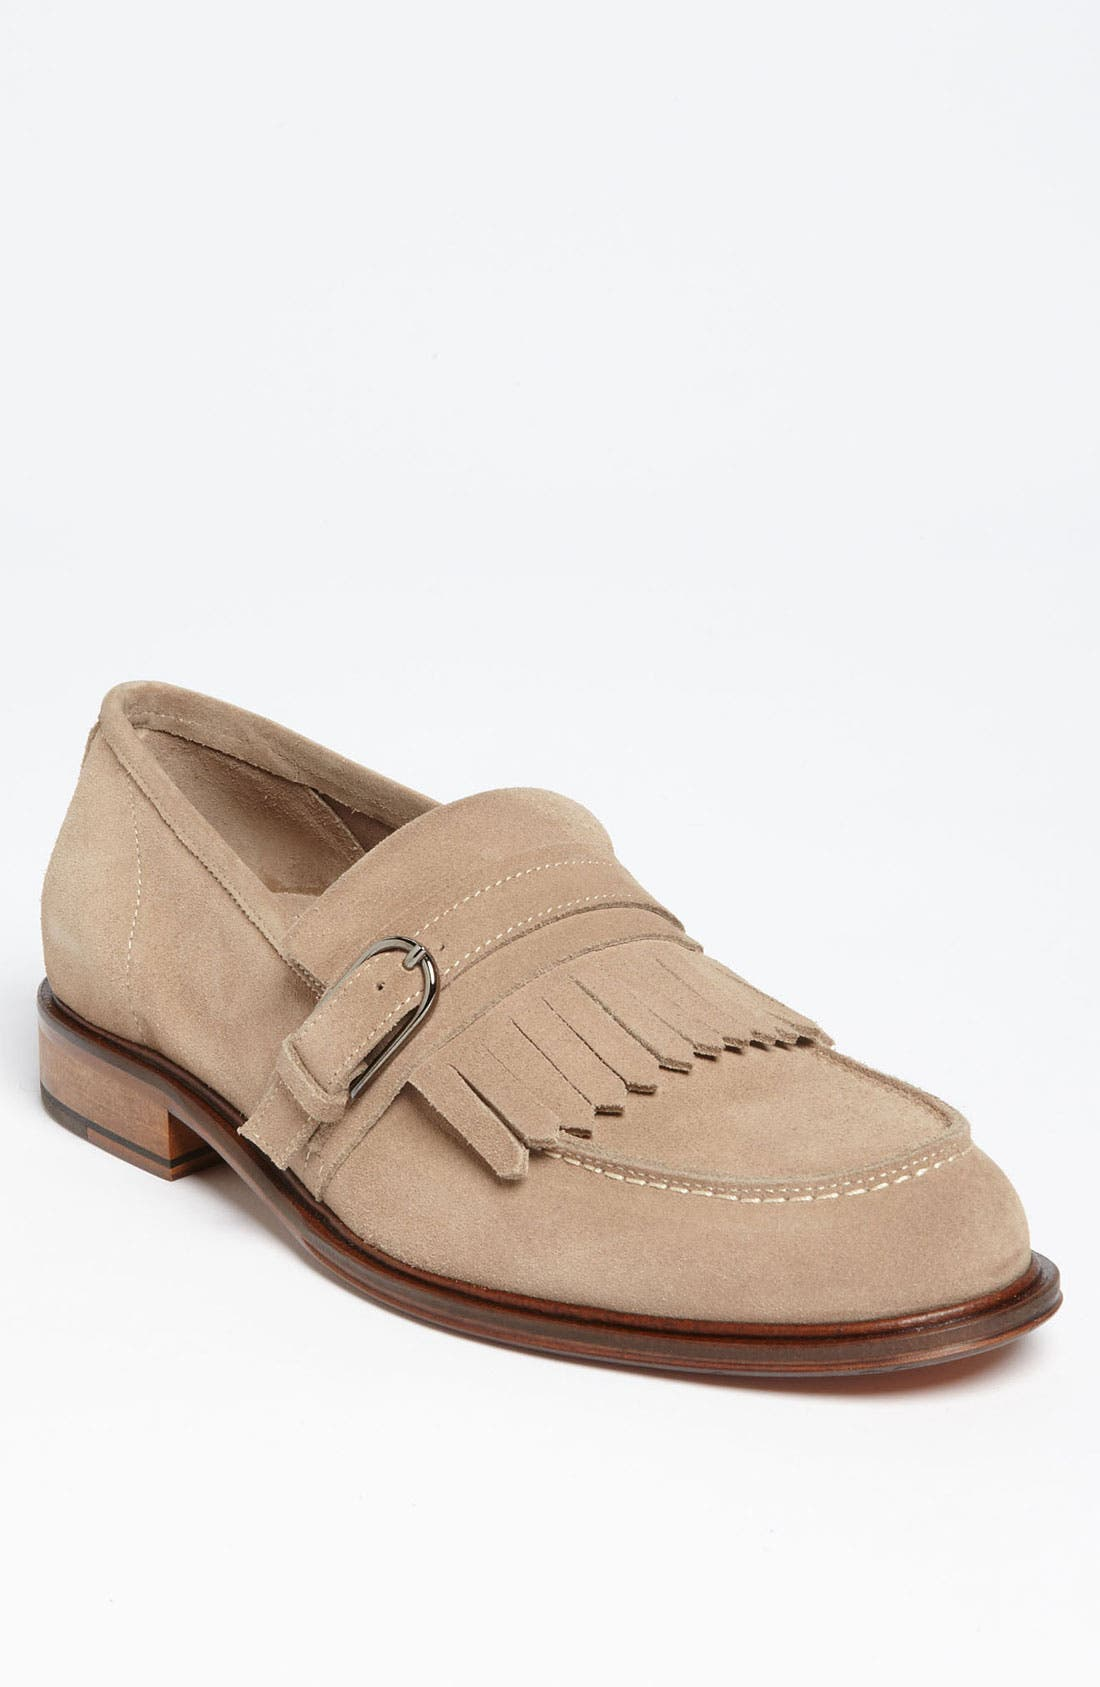 Alternate Image 1 Selected - Bruno Magli 'Pardo' Kiltie Loafer